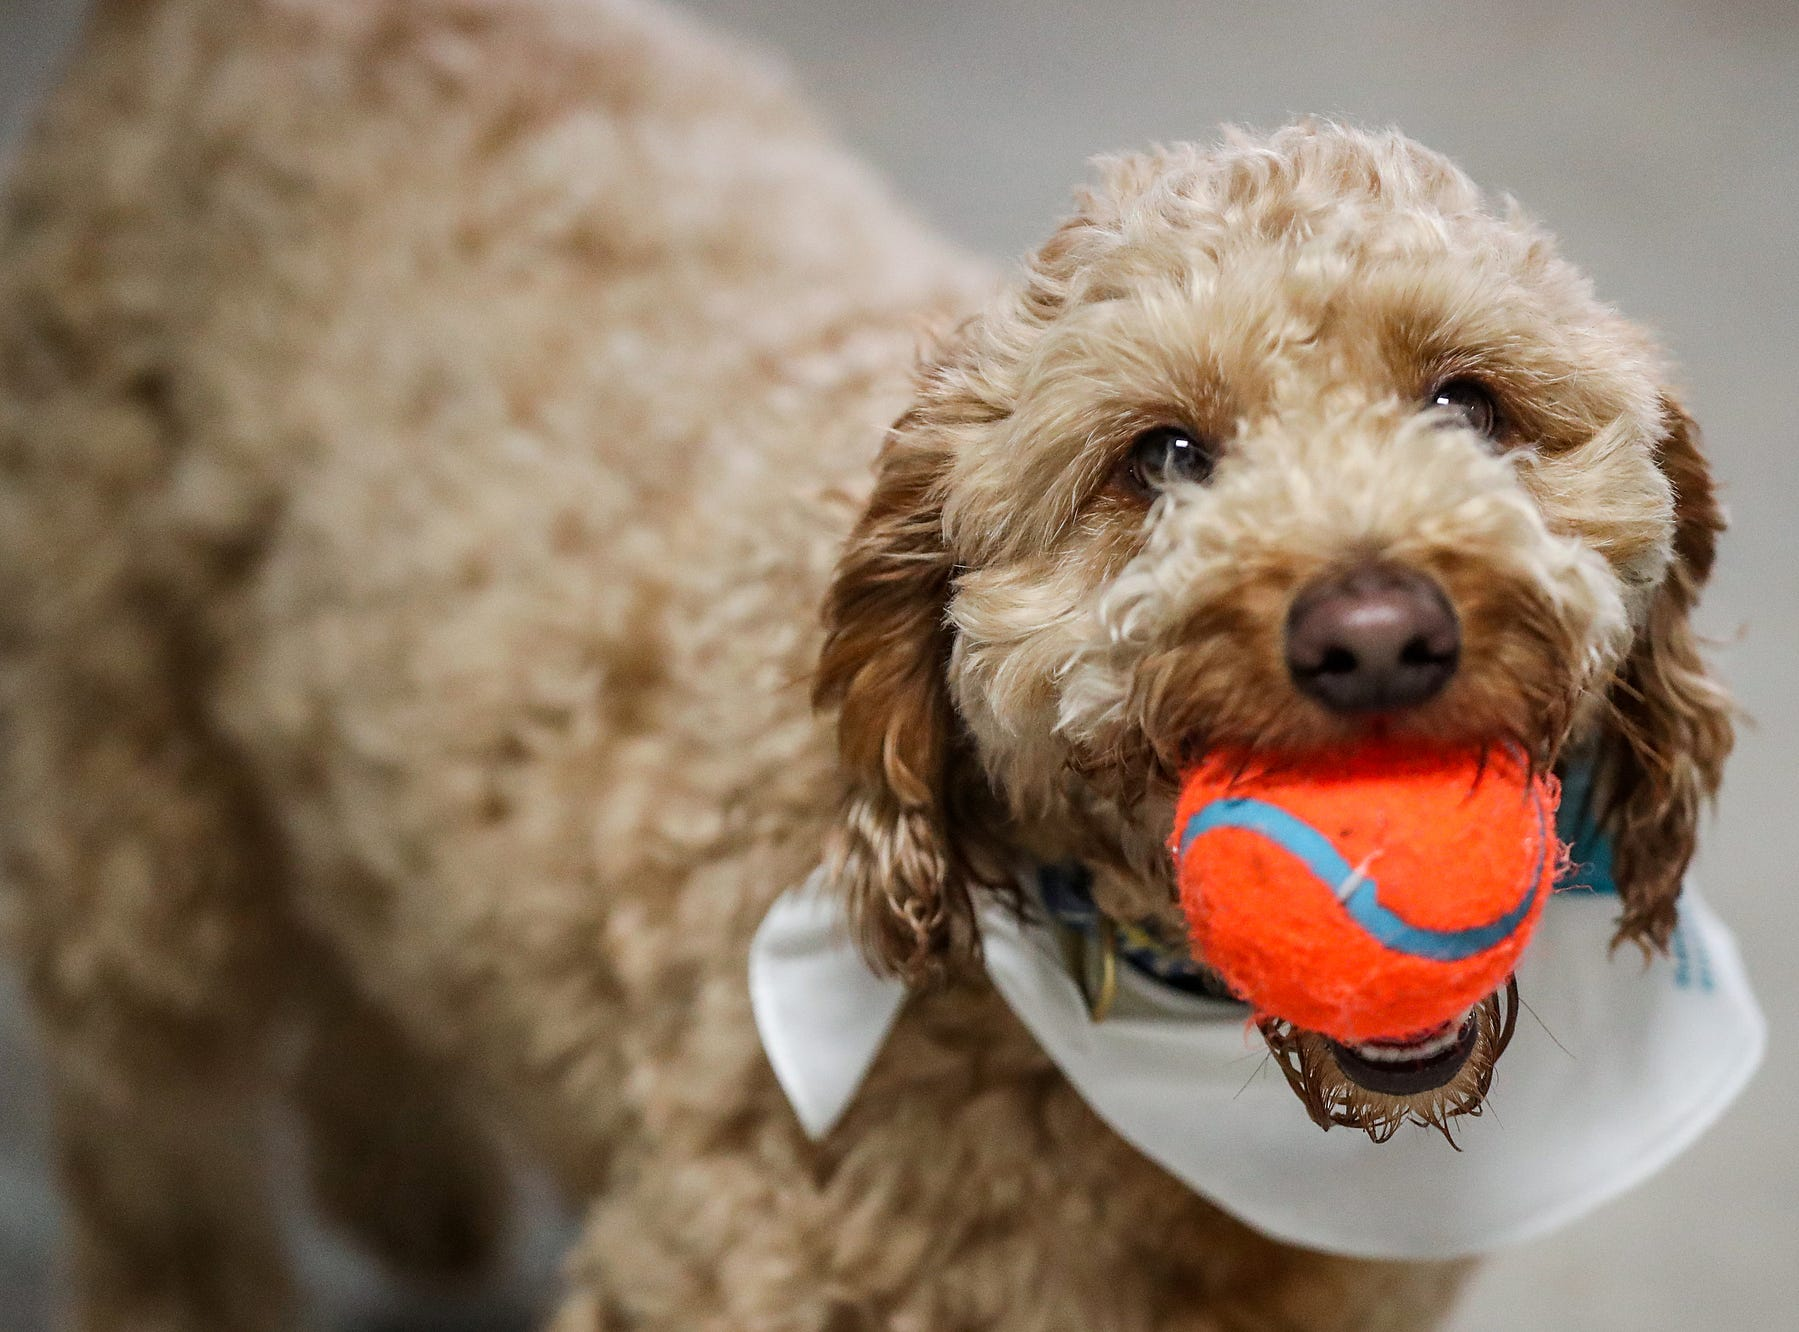 Tuck holds a ball during the grand opening of Indy's Indoor Bark Park in Indianapolis, Saturday, Jan, 5, 2019. The large indoor space offers owners a place to exercise their dogs regardless of the weather. Membership options include single-day, multi-day and annual passes.